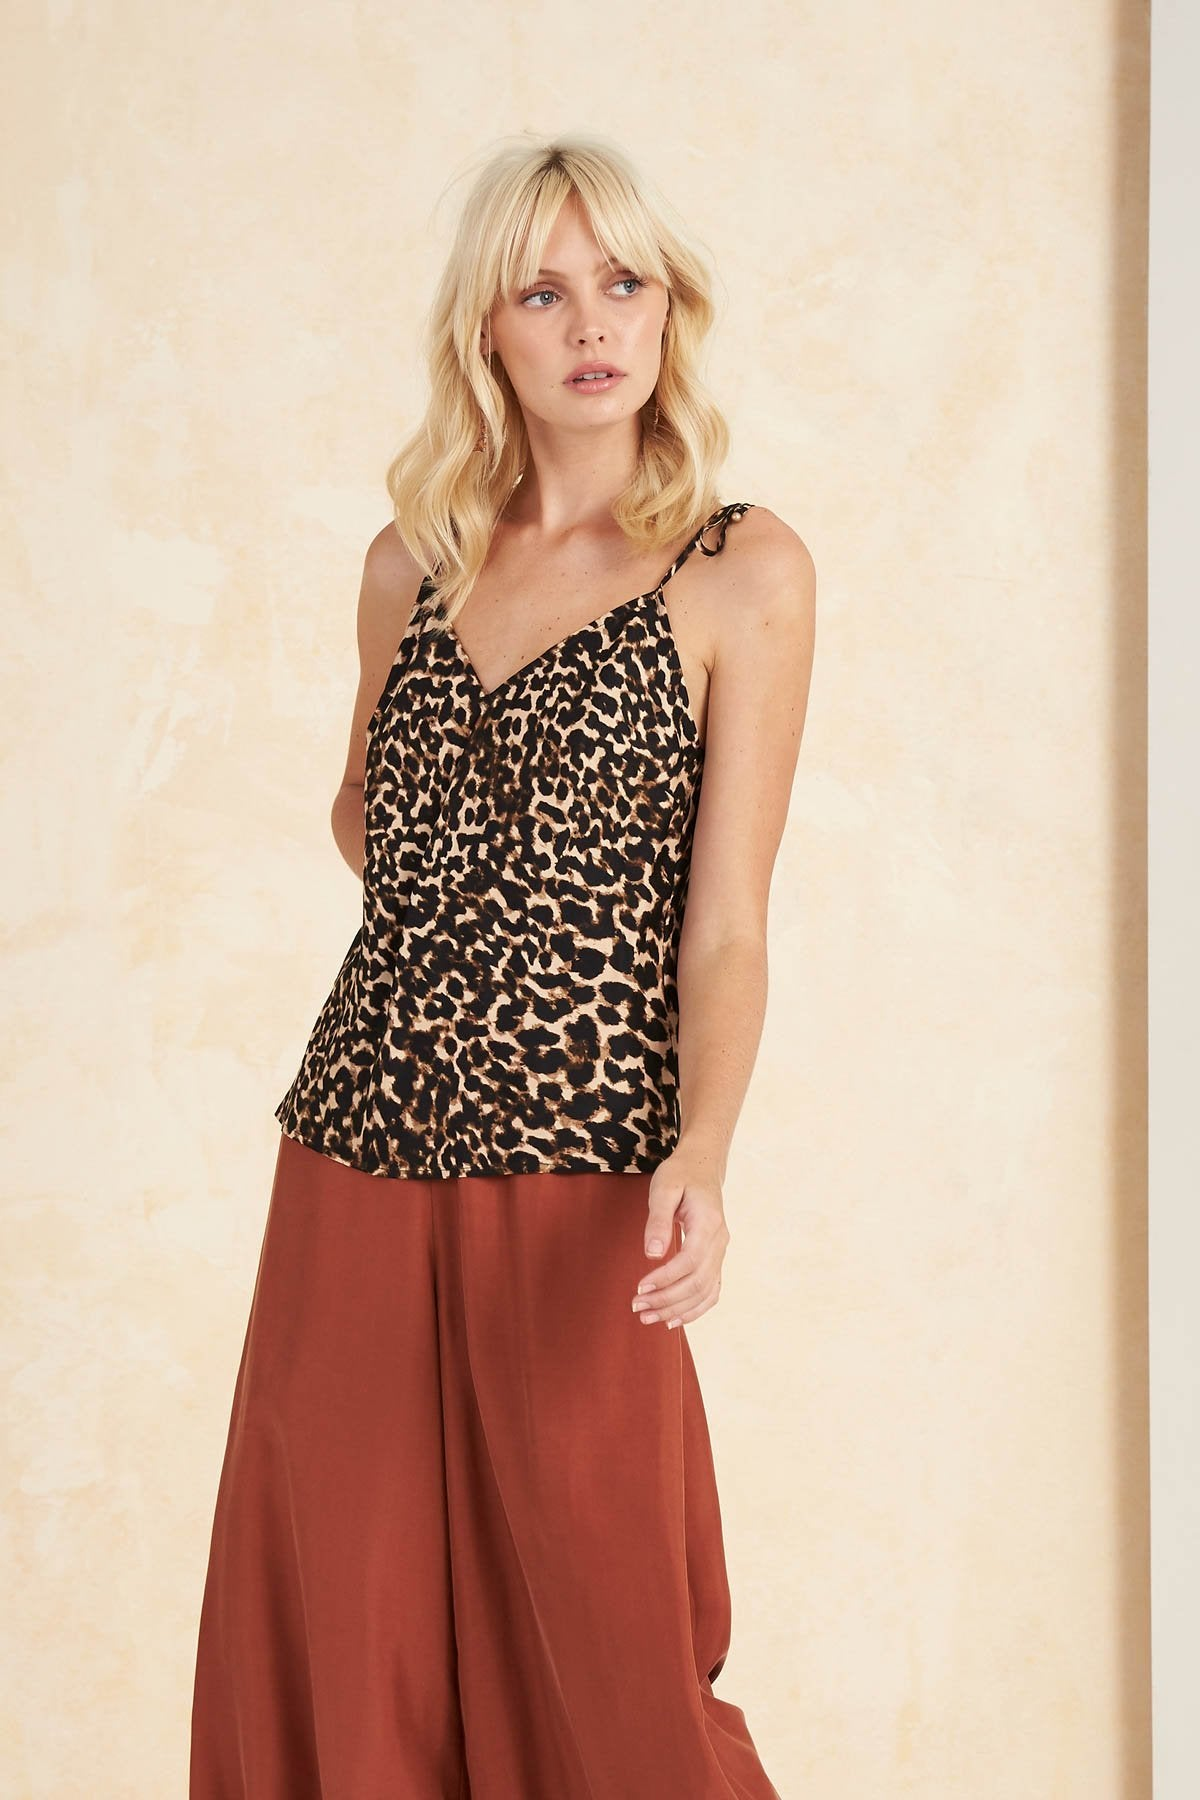 Colca Bias Cami Top in Leopard by Tigerlily